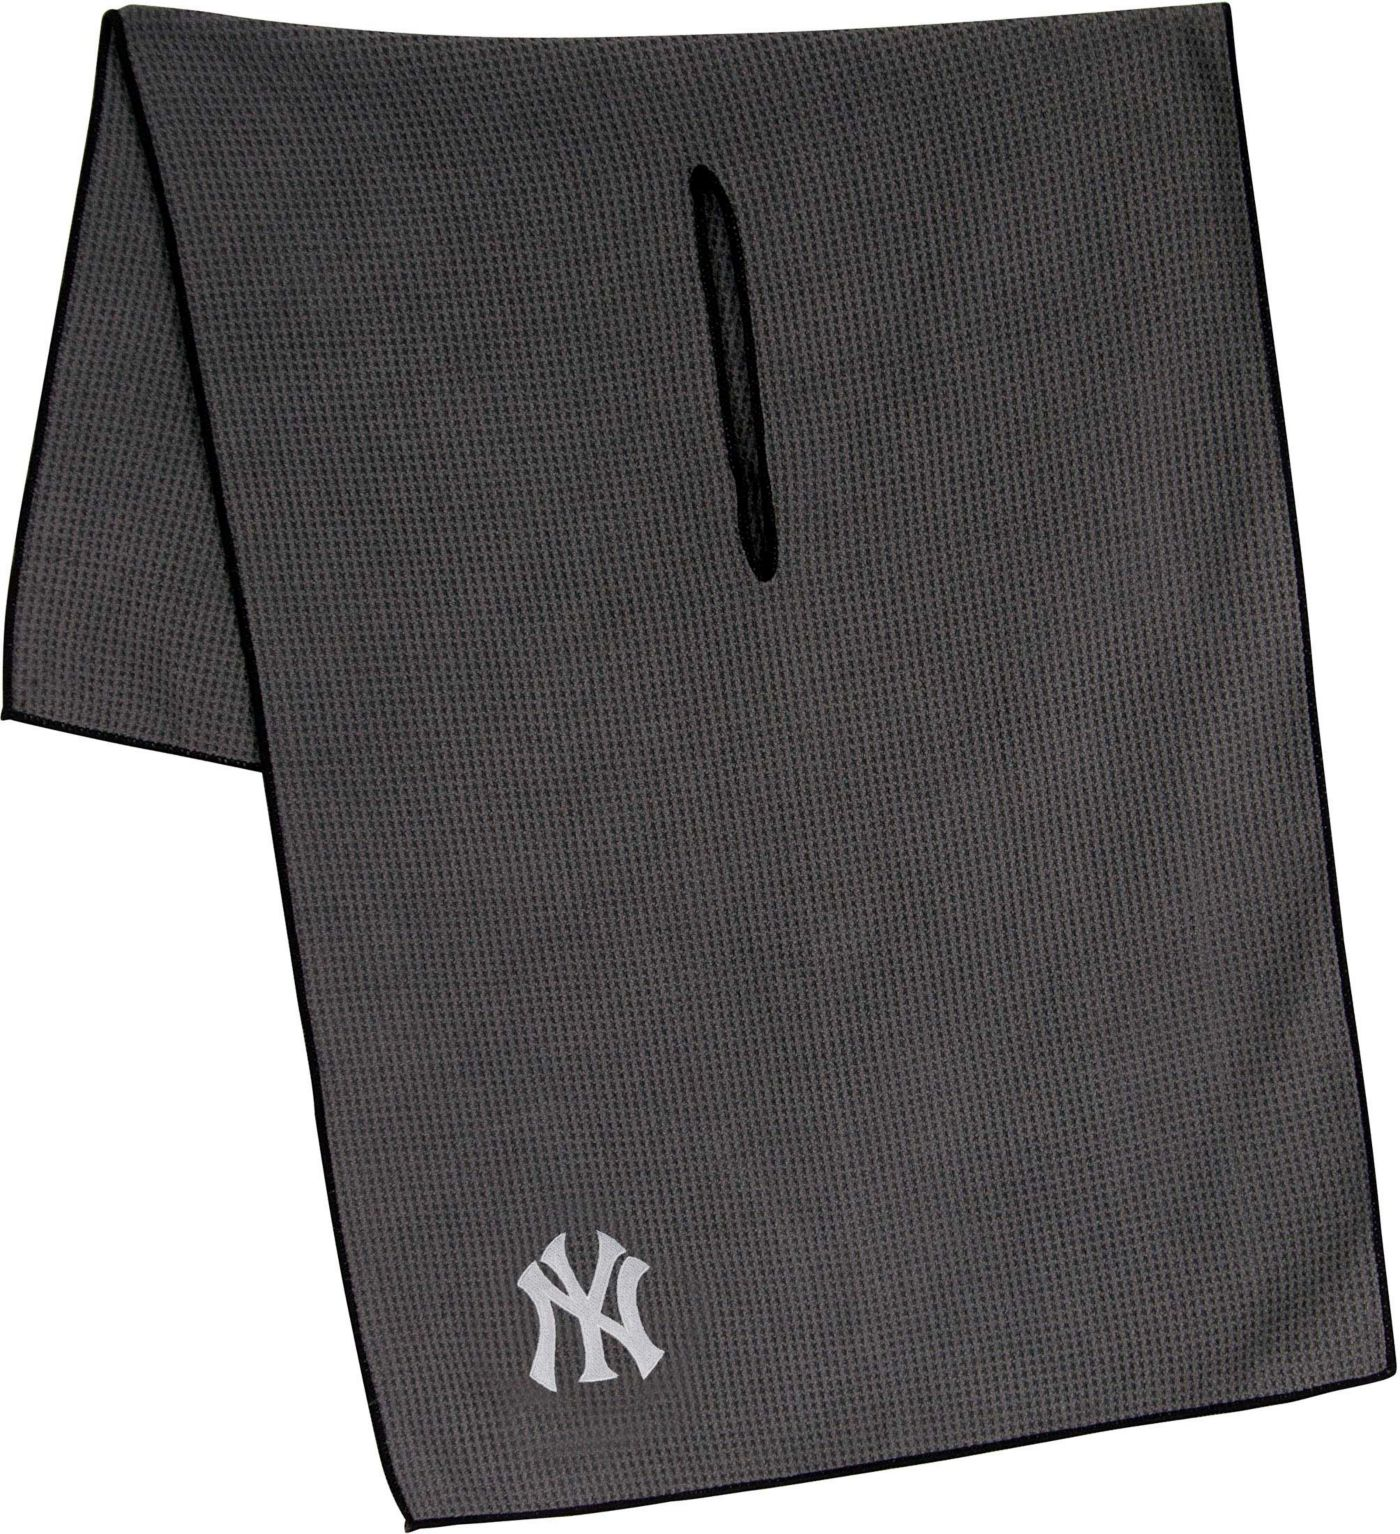 "Team Effort New York Yankees 19"" x 41"" Microfiber Golf Towel"